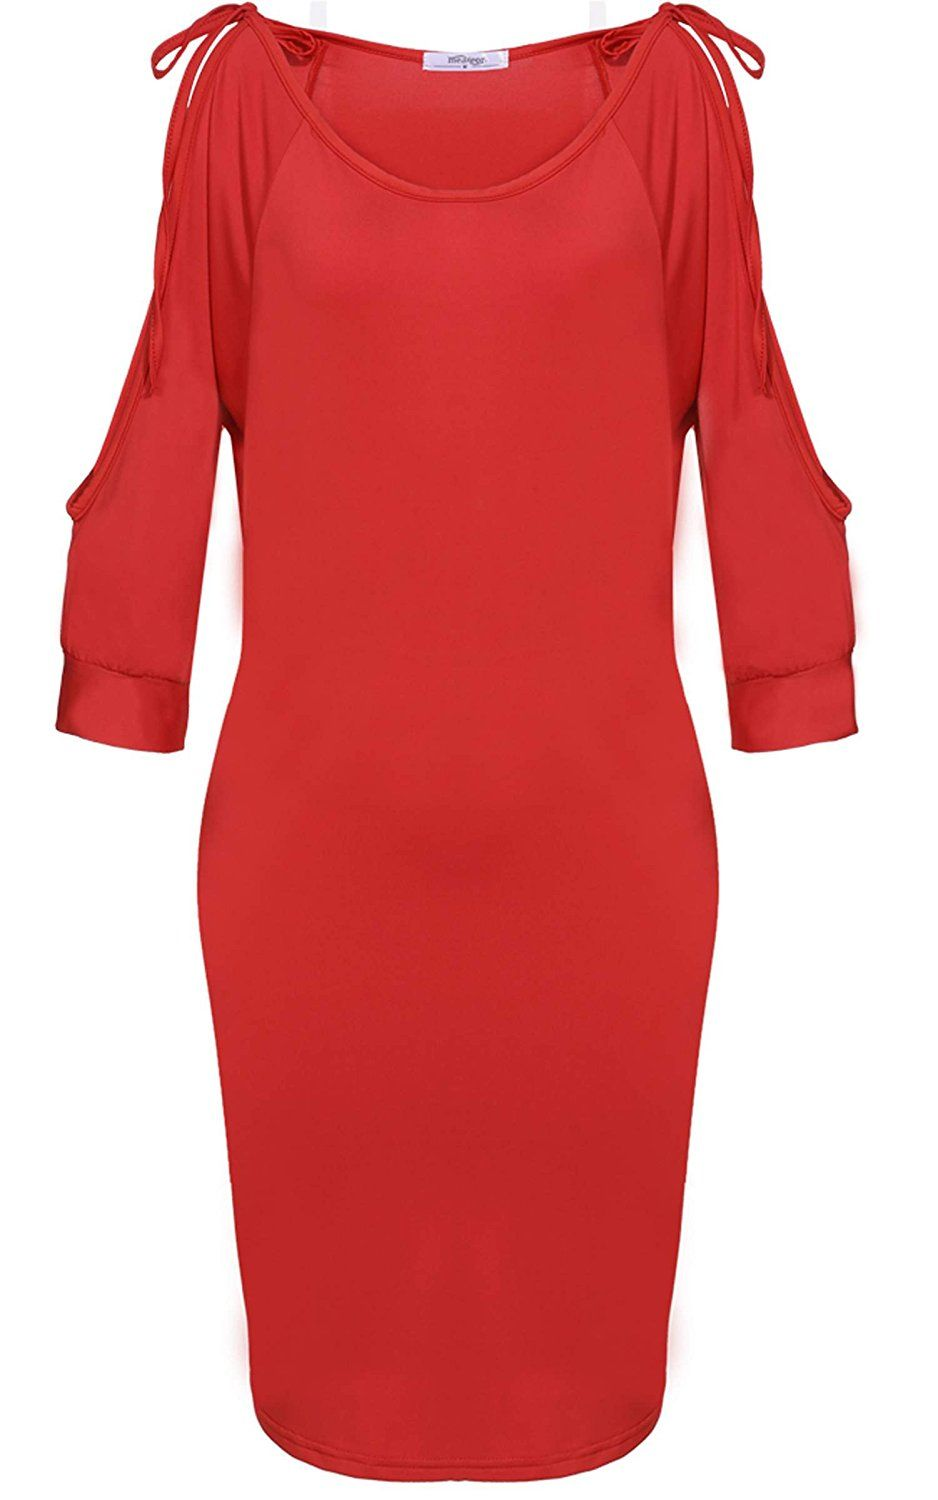 Meaneor Women's Bare Shouldered Scoop Neck Tunic Top Bodycon Casual Dress * Review more details here : Dresses Sale